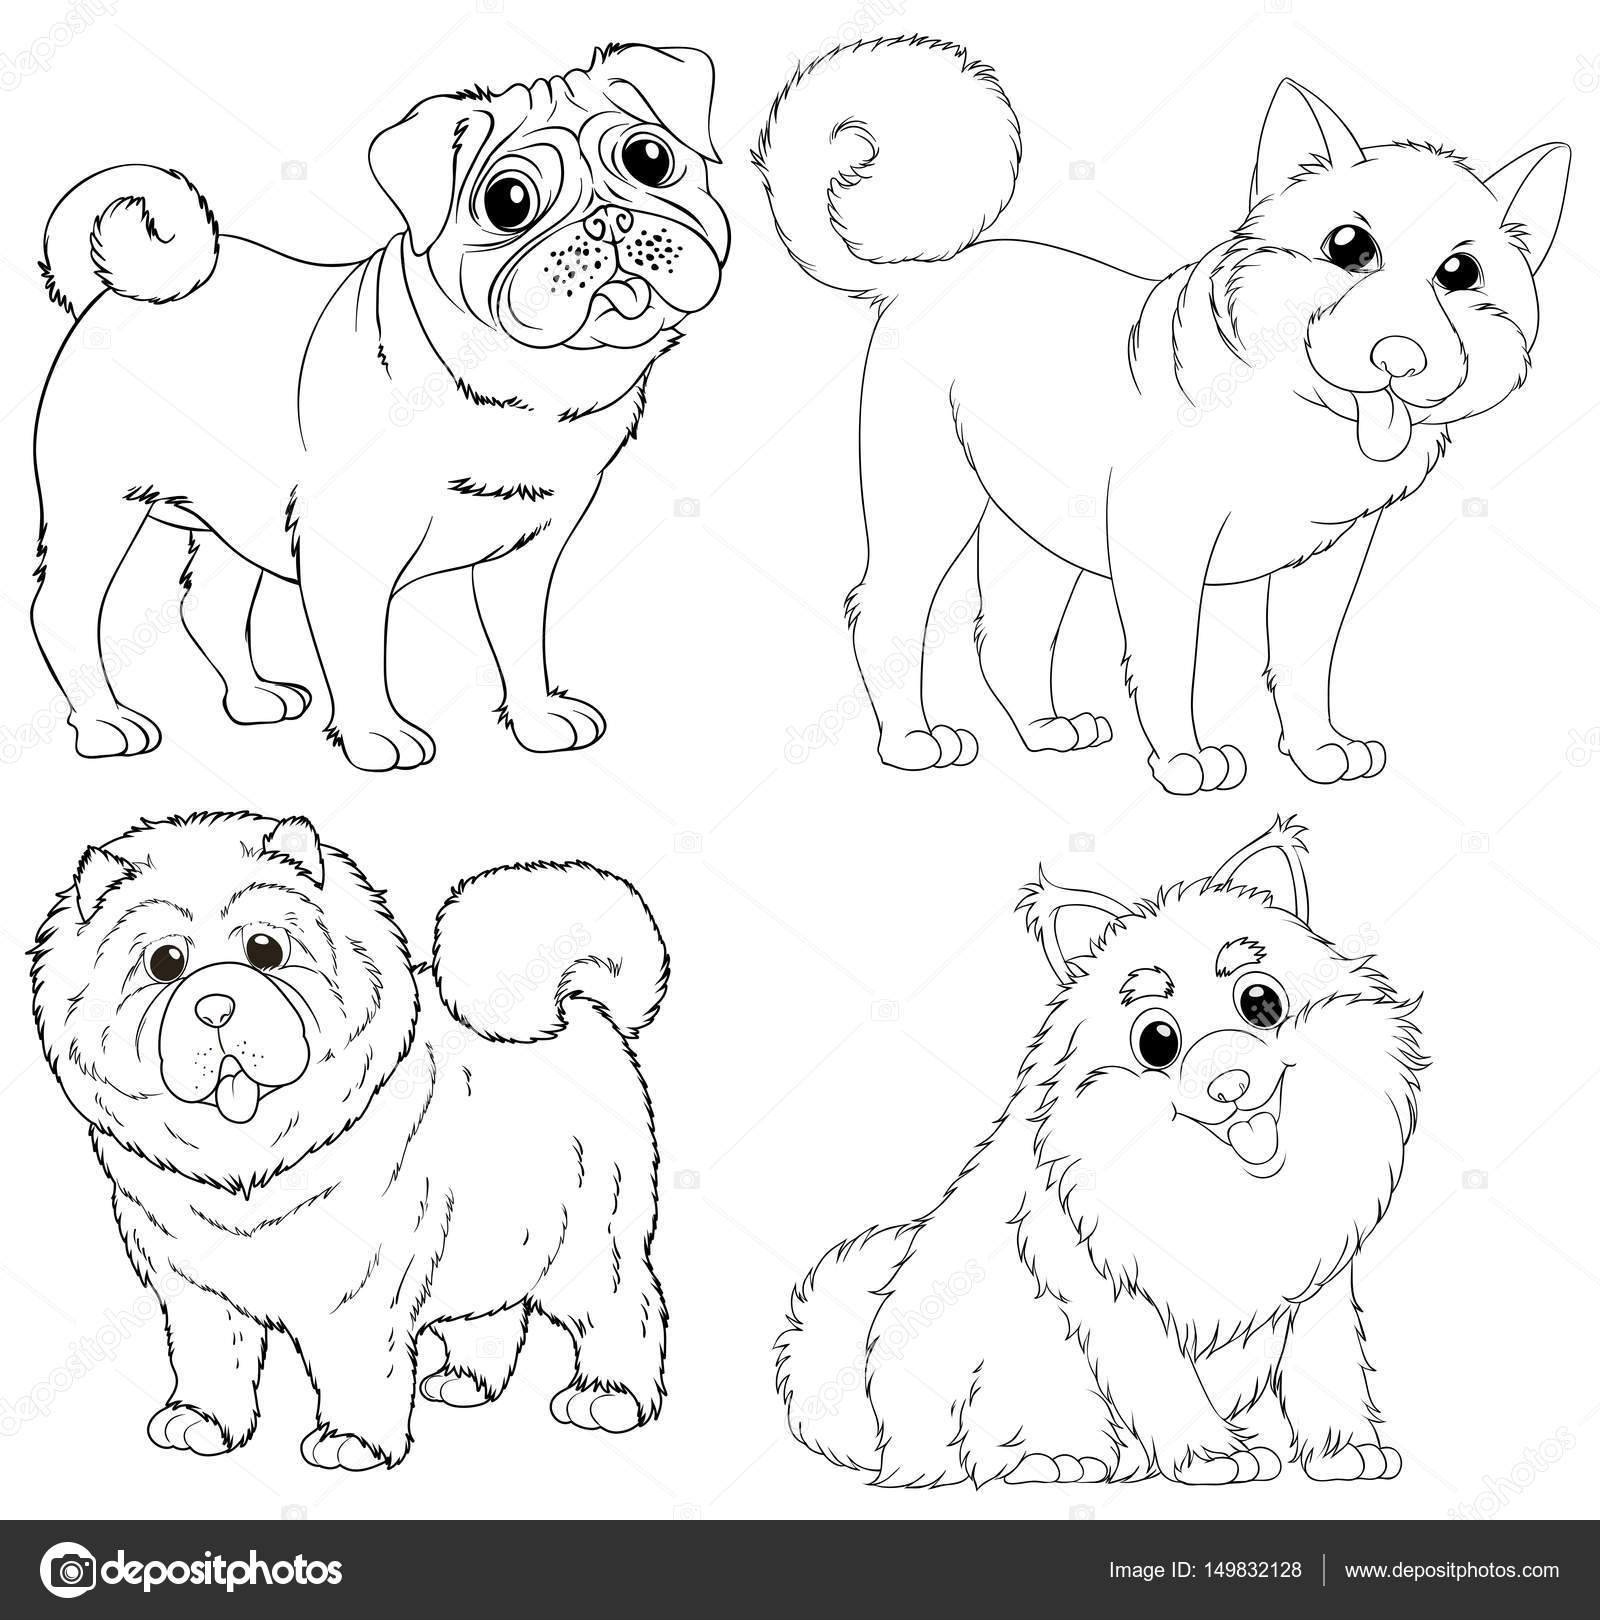 Https Cz Depositphotos Com 149832128 Stock Illustration Doodle Animal Characters For Dogs Html